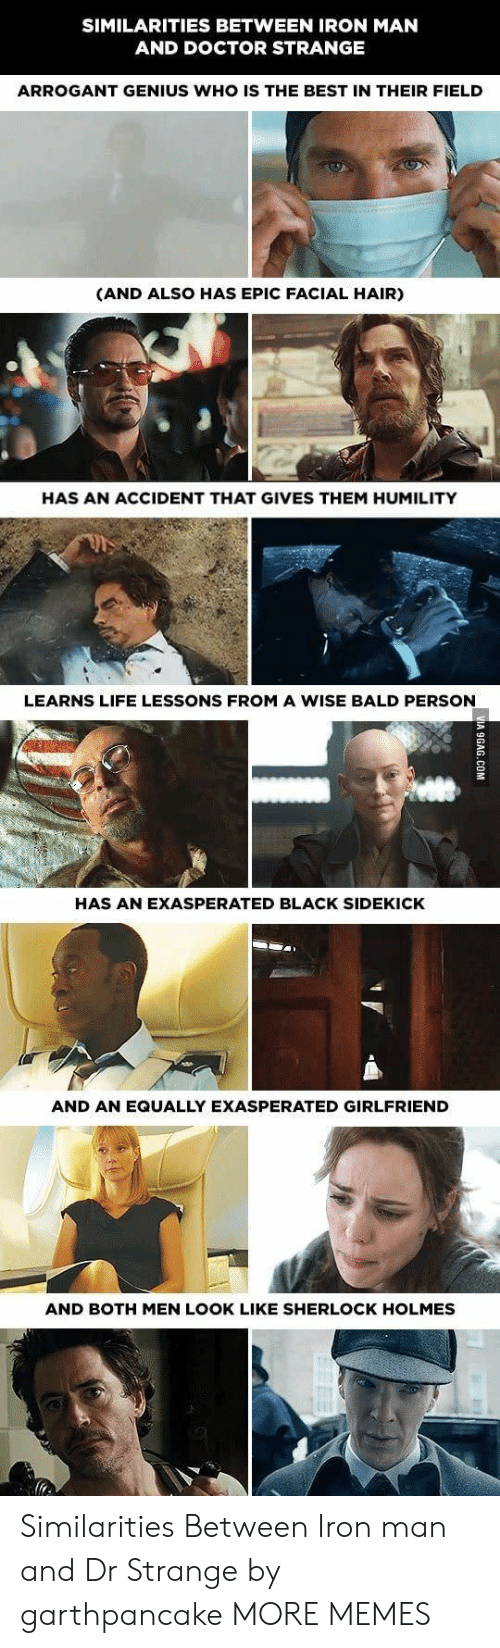 Dank, Doctor, and Iron Man: SIMILARITIES BETWEEN IRON MAN  AND DOCTOR STRANGE  ARROGANT GENIUS WHO IS THE BEST IN THEIR FIELD  (AND ALSO HAS EPIC FACIAL HAIR)  HAS AN ACCIDENT THAT GIVES THEM HUMILITY  LEARNS LIFE LESSONS FROM A WISE BALD PERSON  HAS AN EXASPERATED BLACK SIDEKICK  AND AN EQUALLY EXASPERATED GIRLFRIEND  AND BOTH MEN LOOK LIKE SHERLOCK HOLMES Similarities Between Iron man and Dr Strange by garthpancake MORE MEMES